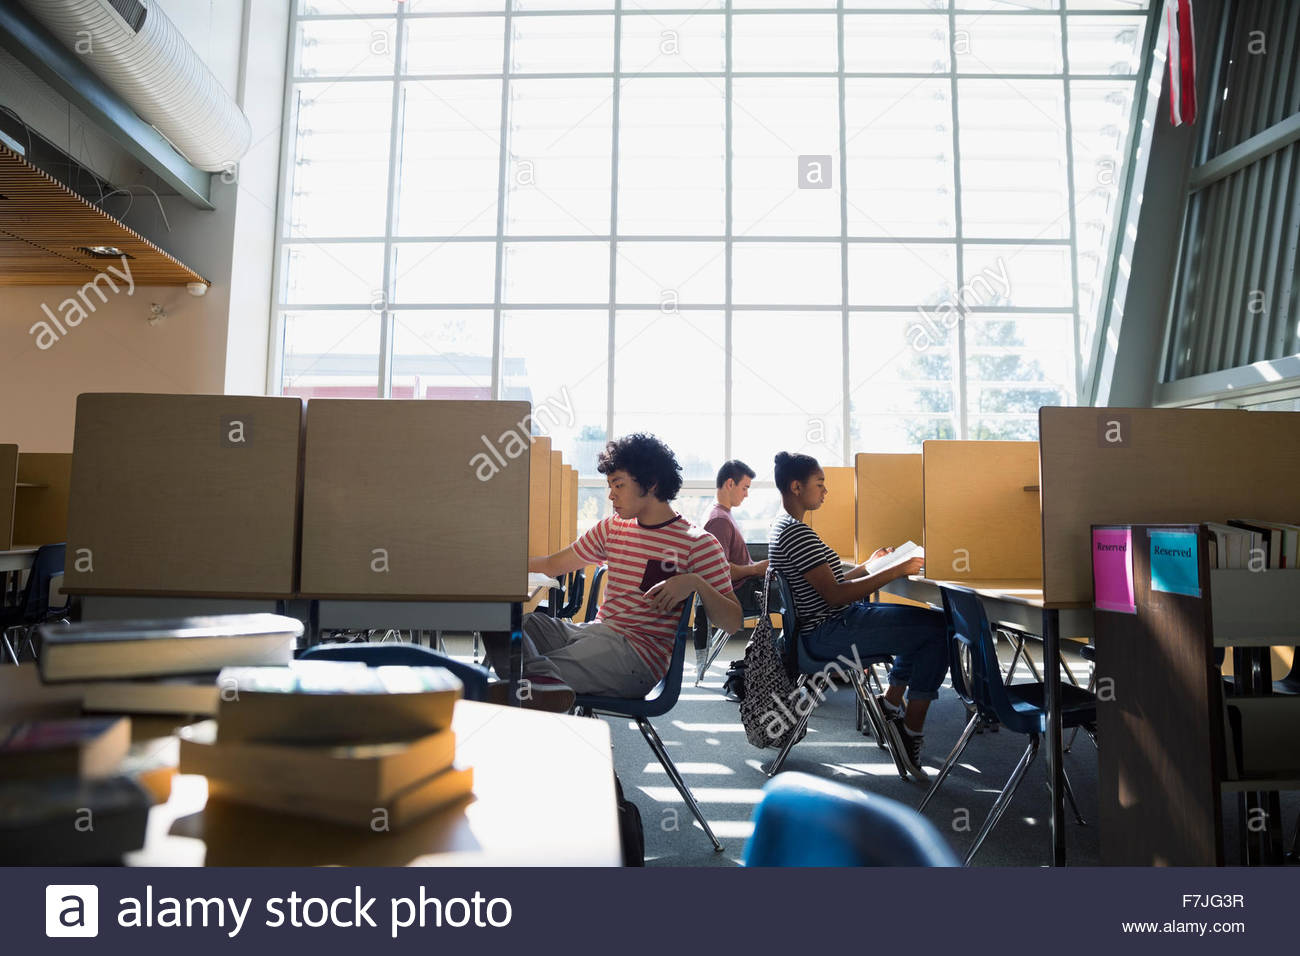 High school students studying in library - Stock Image